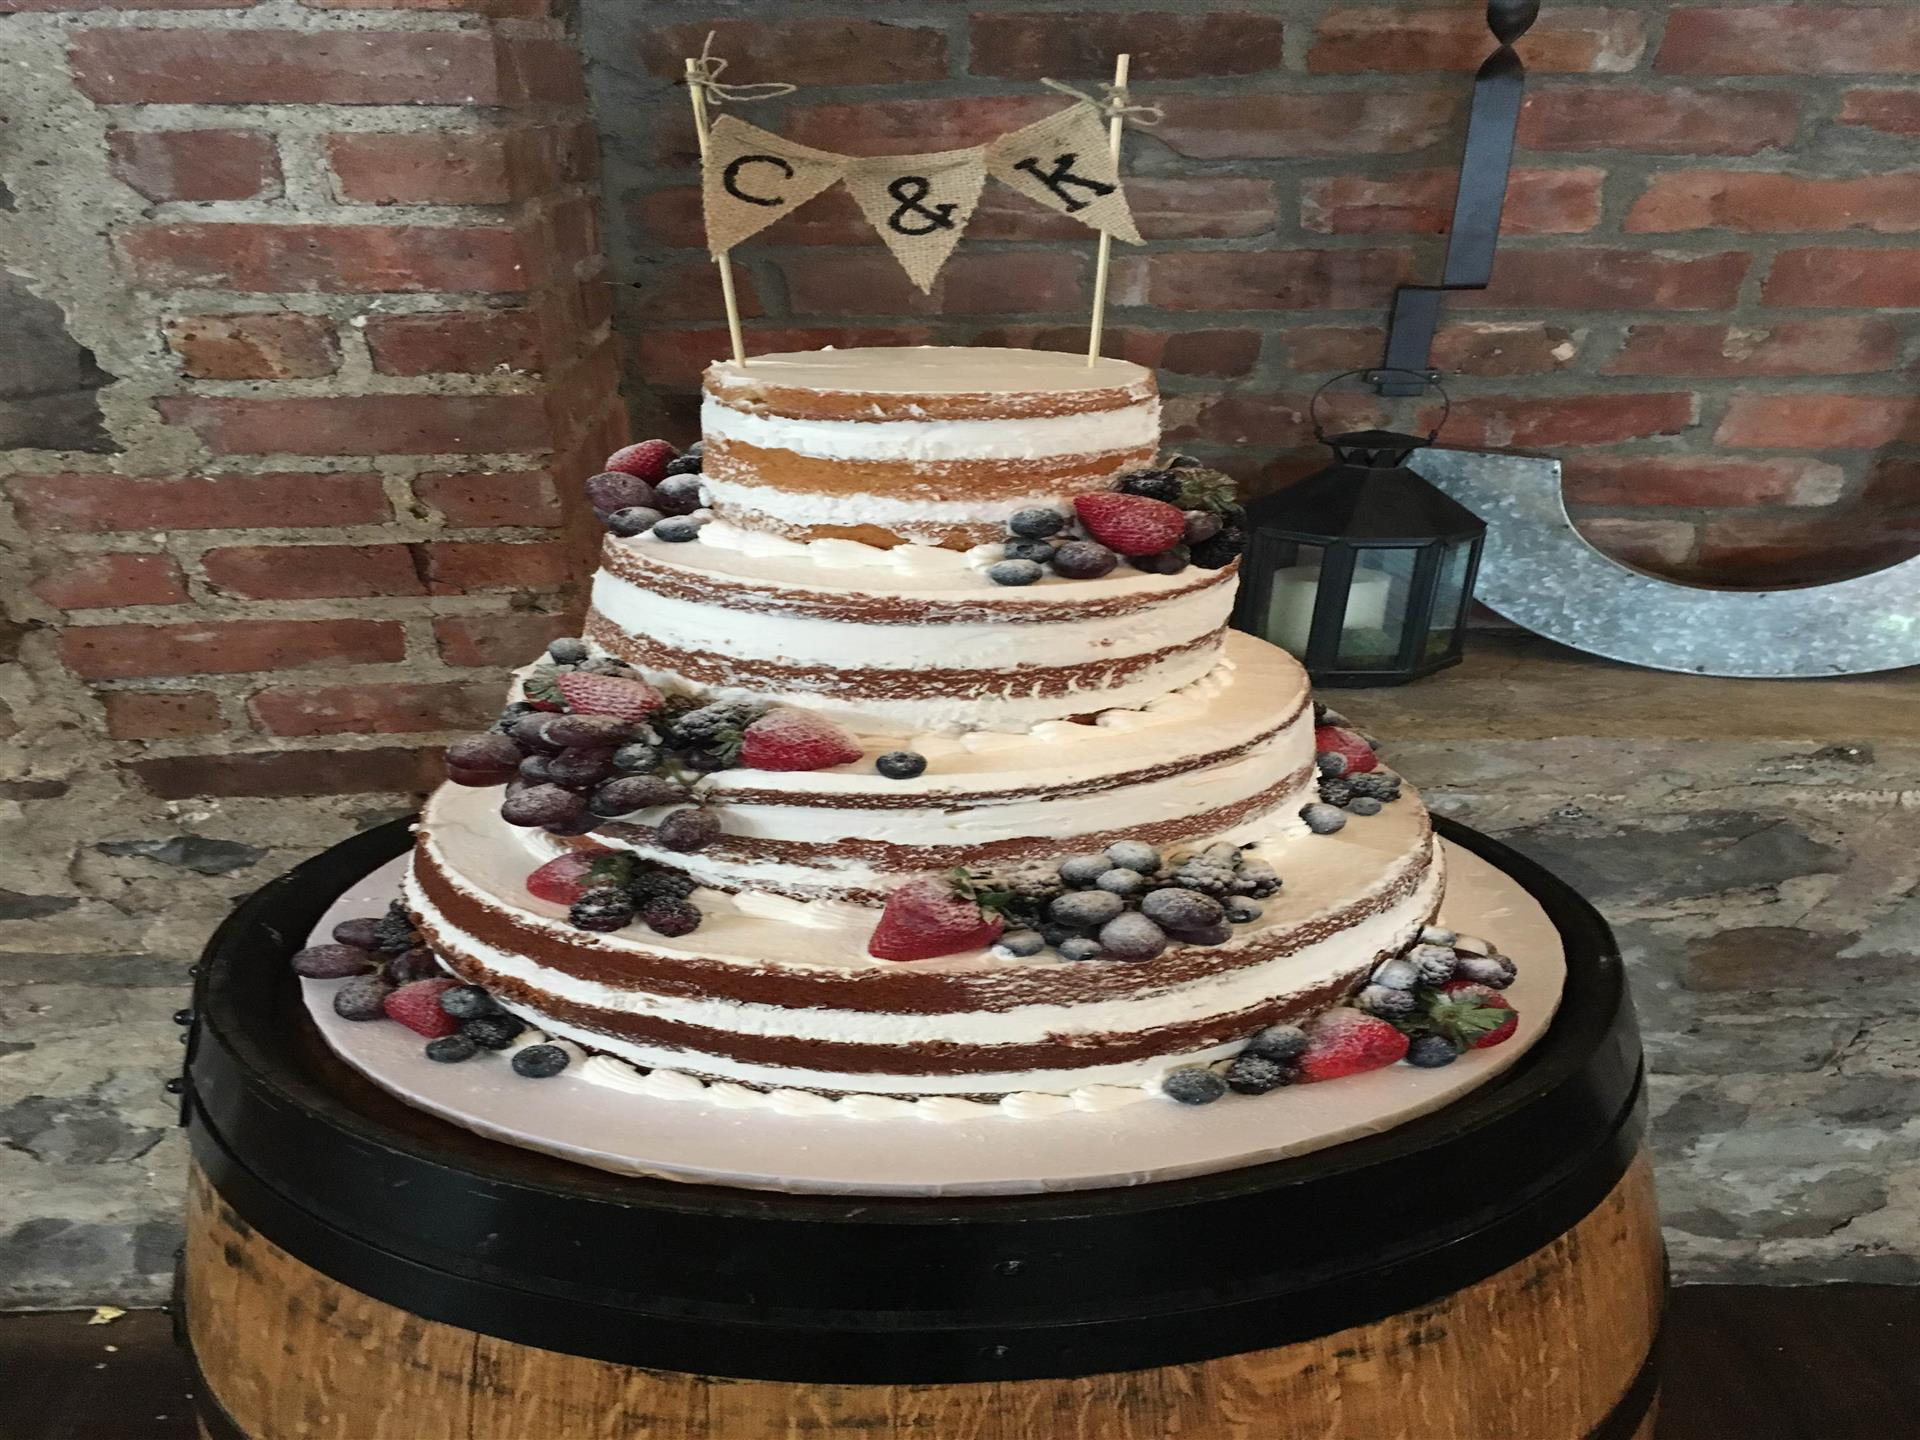 naked cake topped with strawberries and blueberries